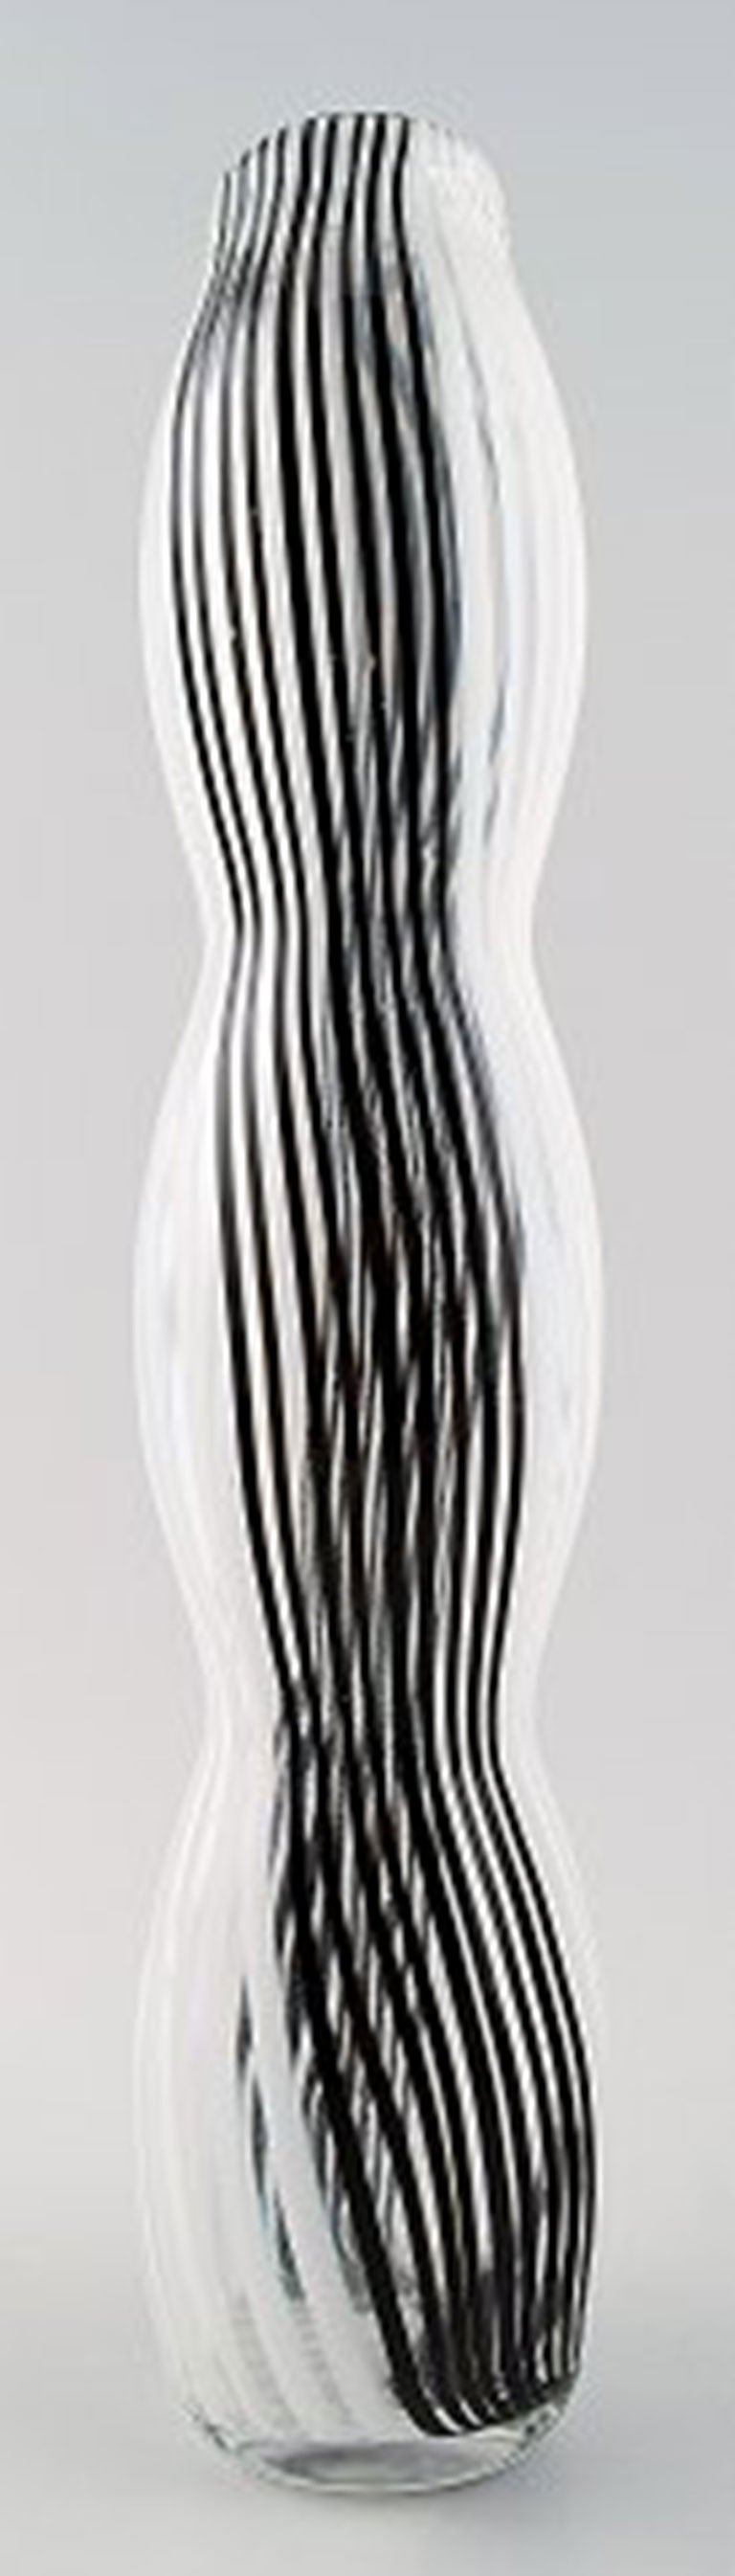 murano large art glass vase unstamped black and white striped  - murano large art glass vase unstamped black and white striped